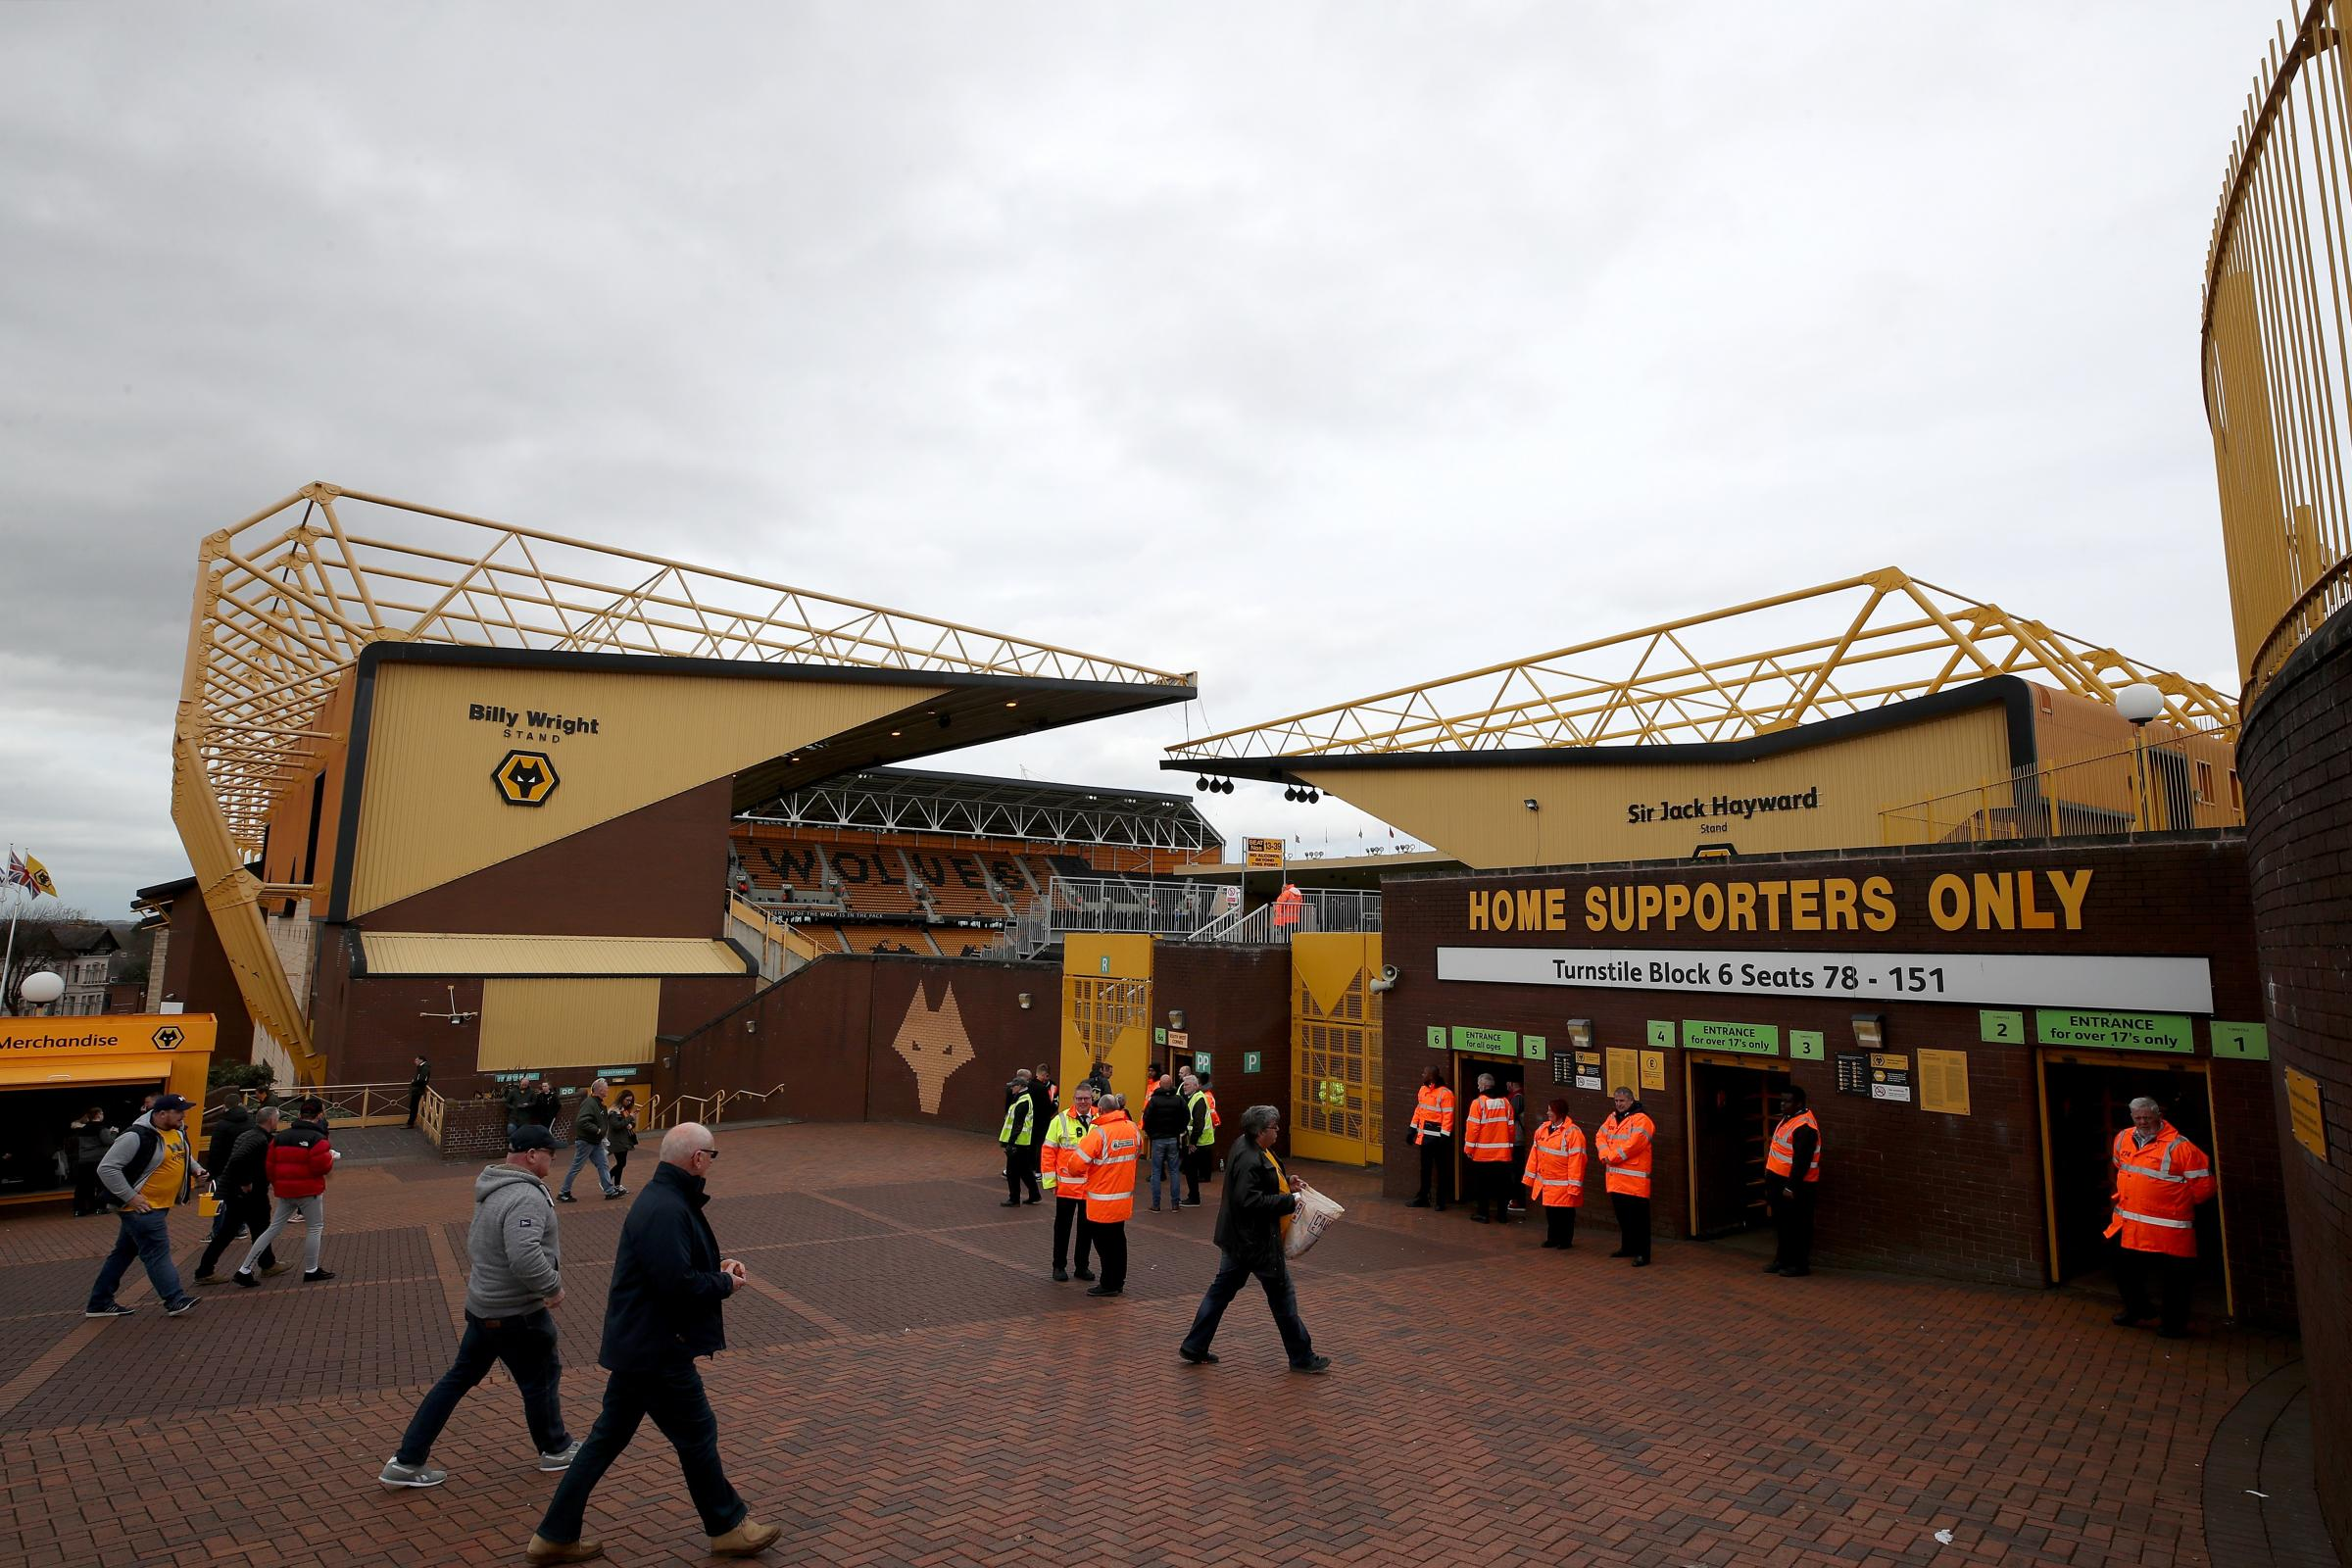 Outside Molineux